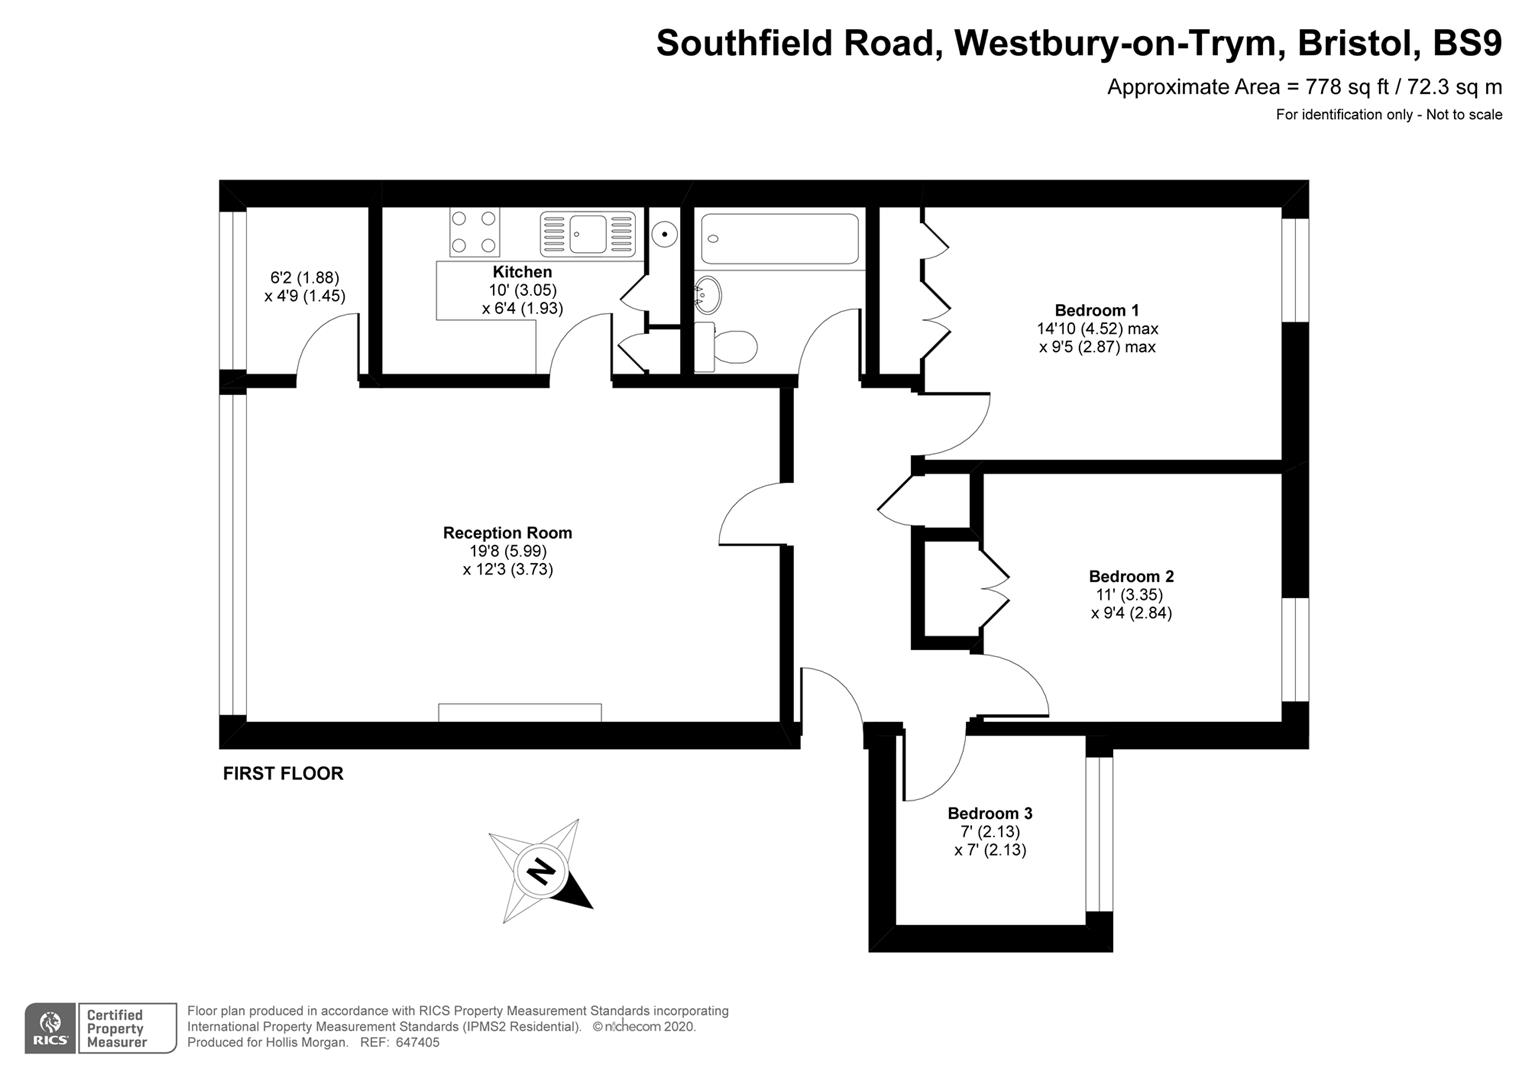 Floorplans For Southfield Road, Westbury-On-Trym